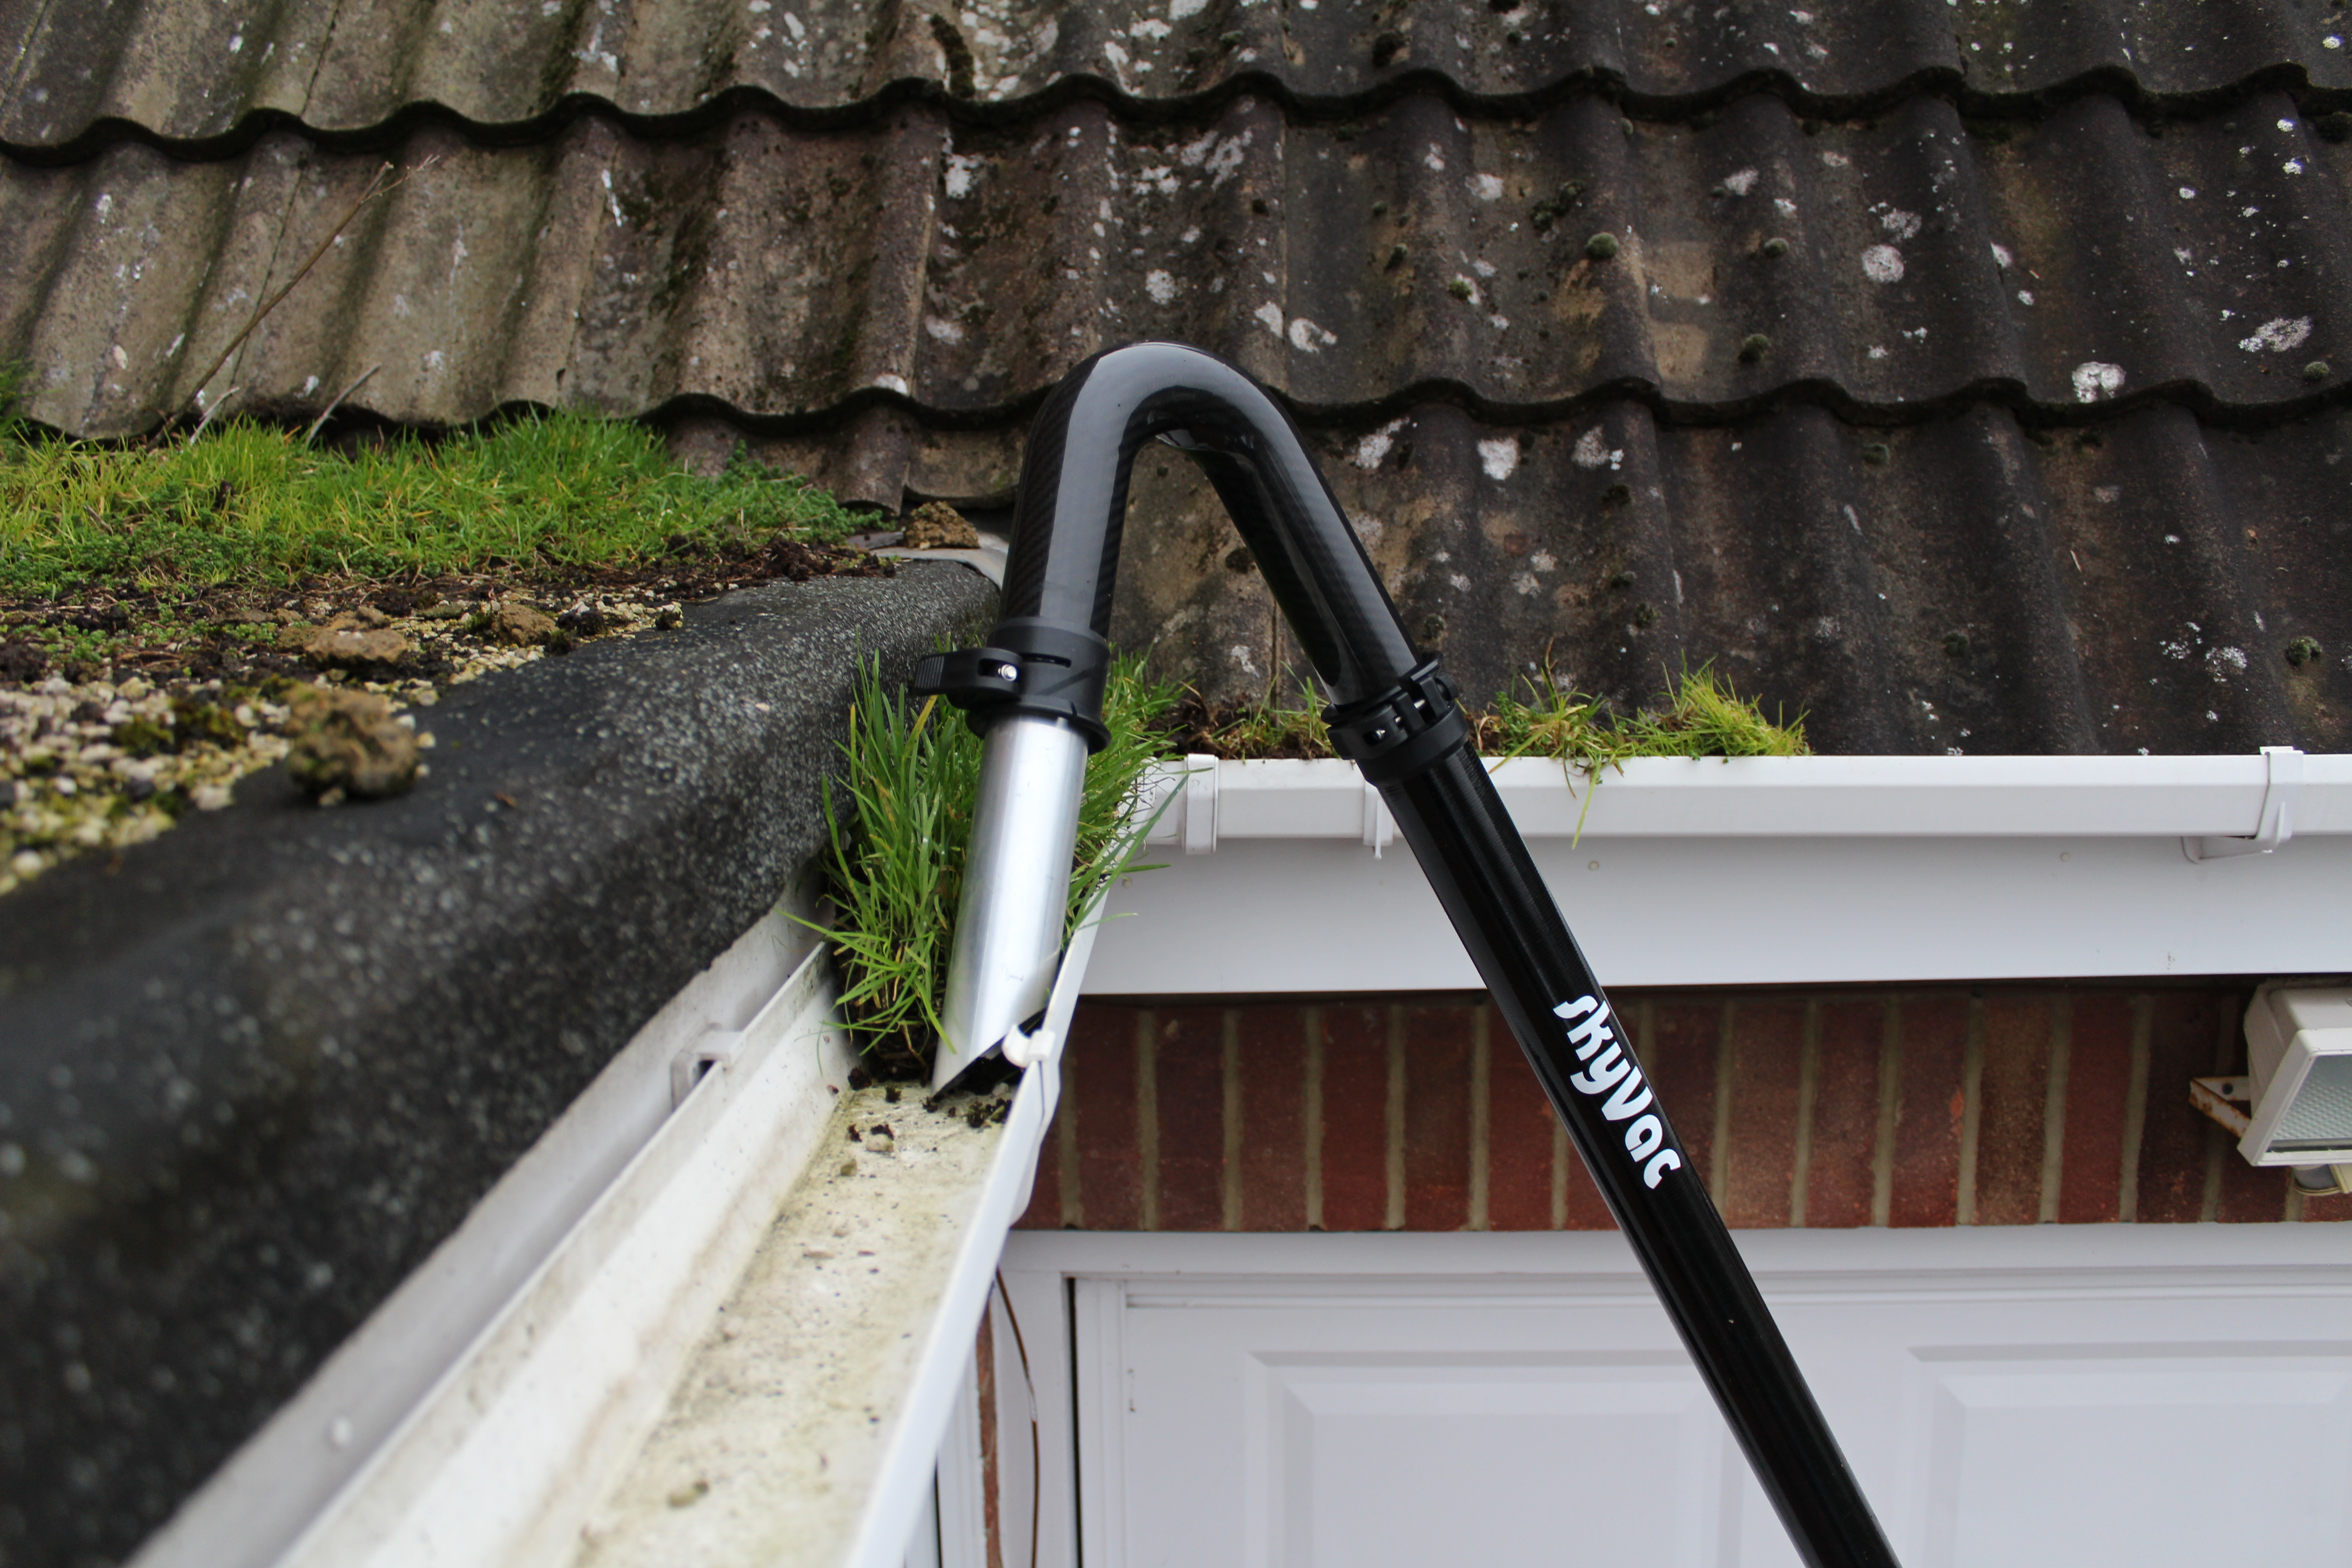 Gutter cleaning - grass in gutter